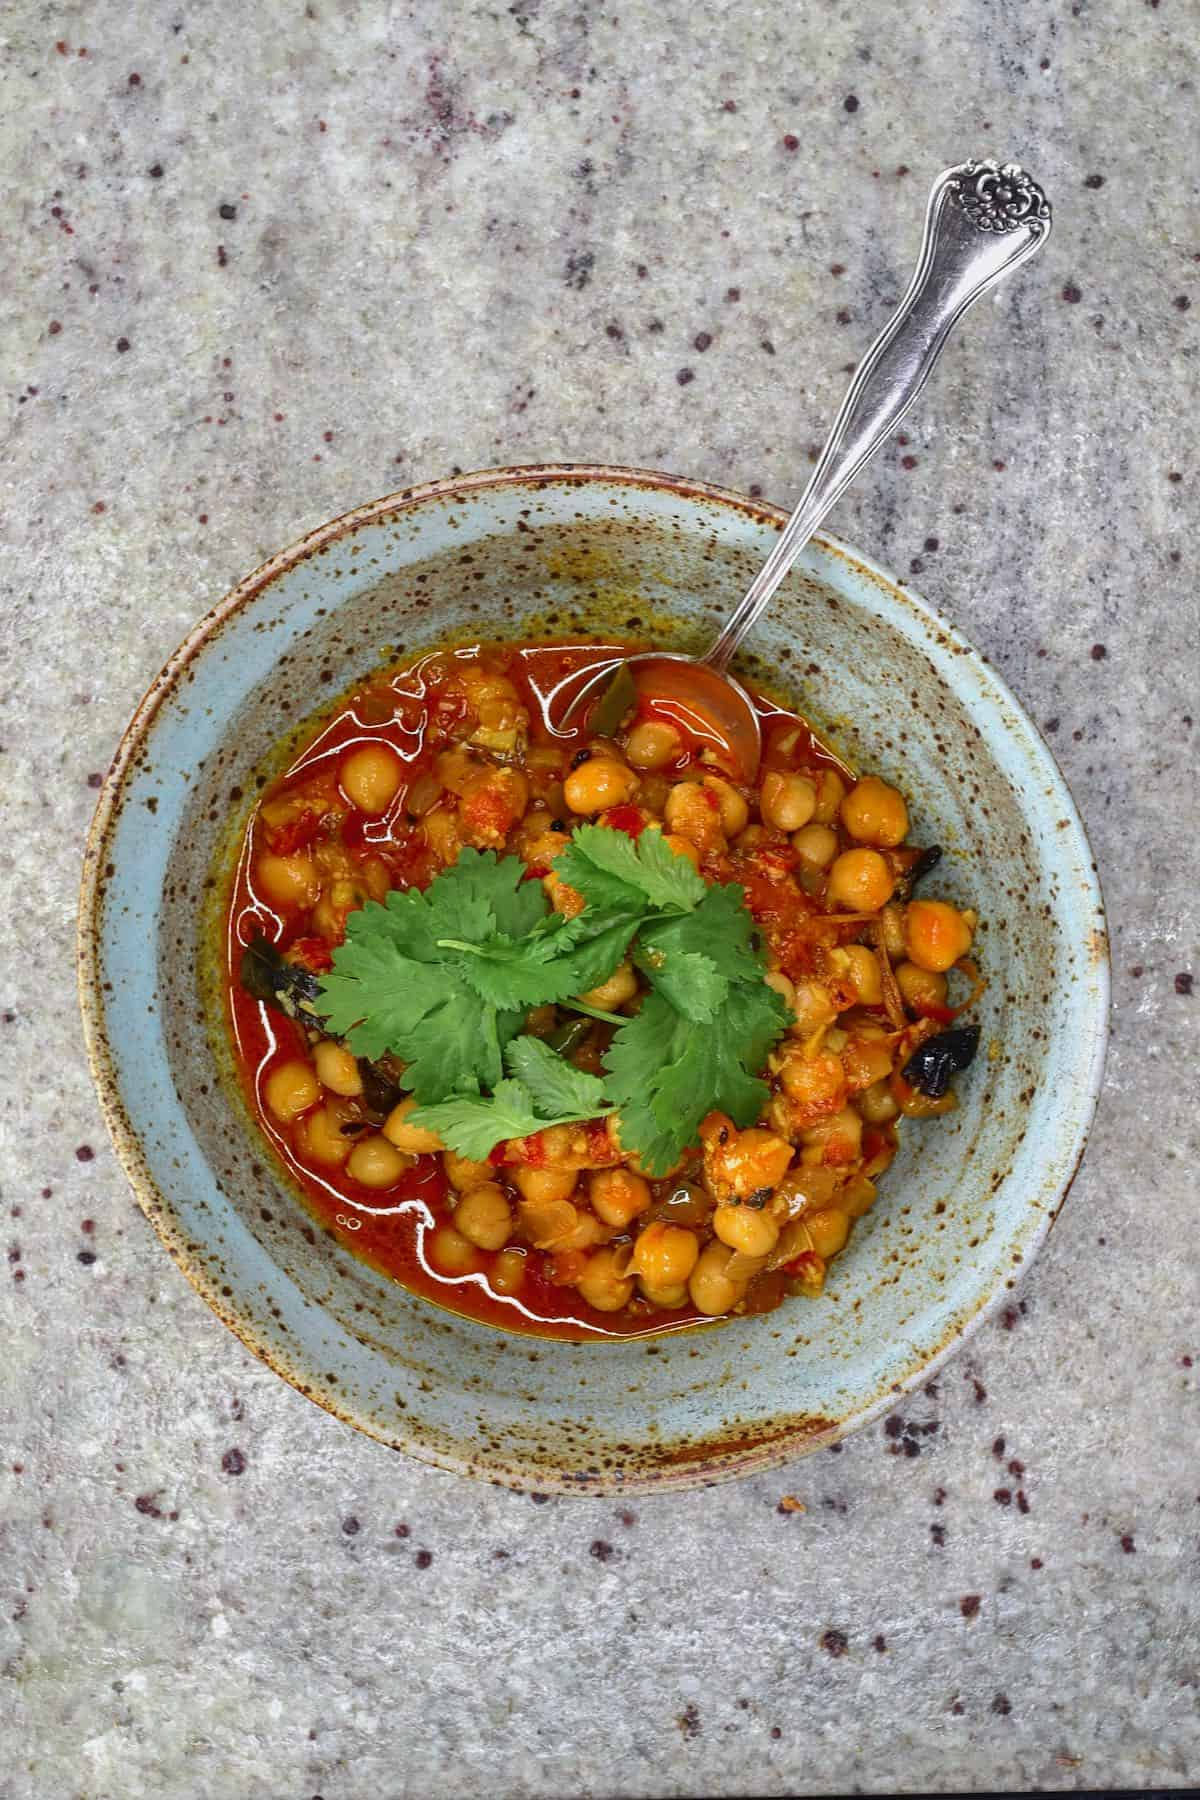 Chickpea curry in a bowl with a spoon